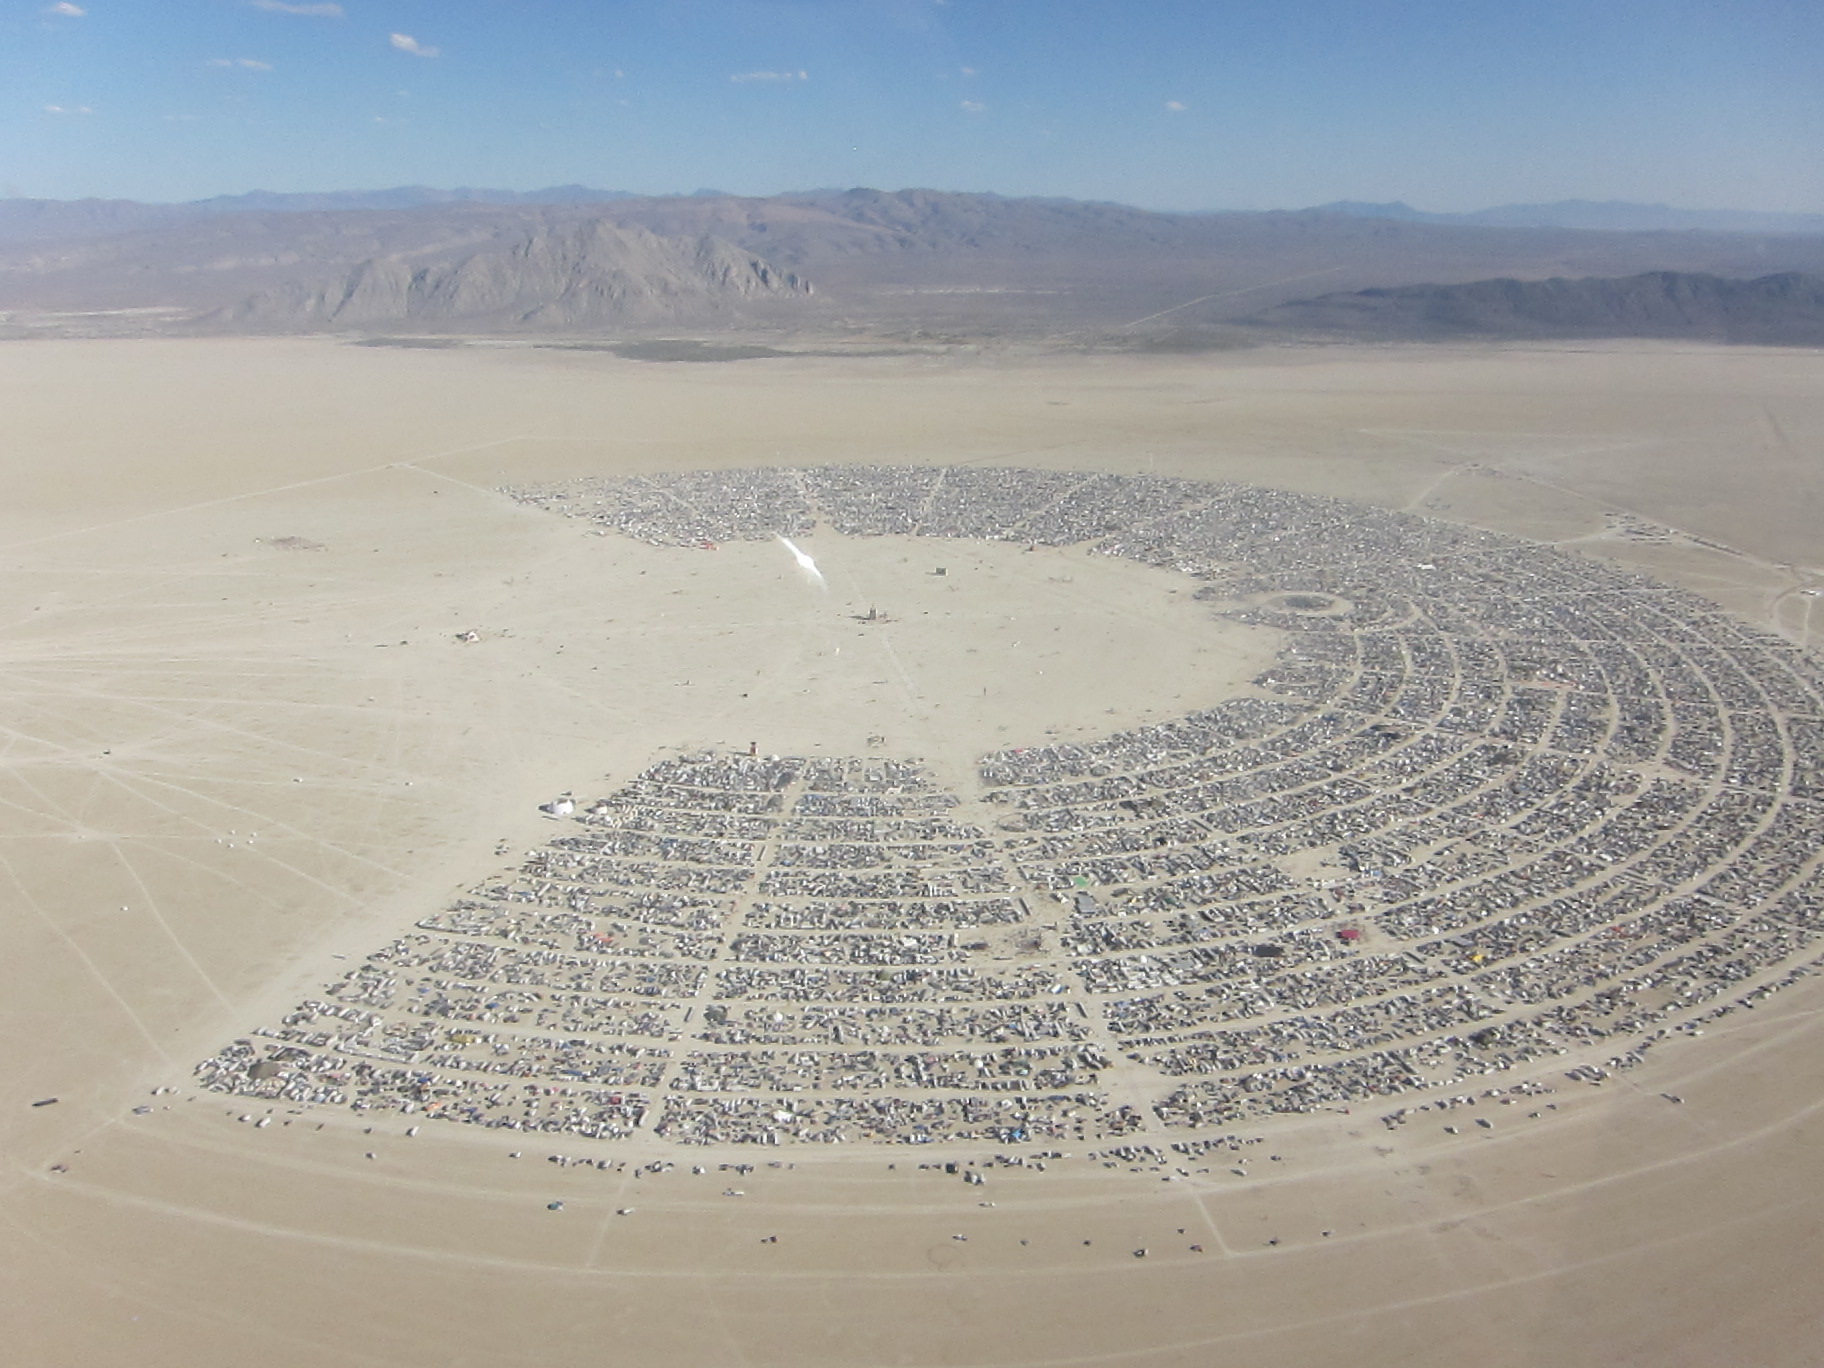 Vista aérea da playa, galeria a céu aberto, do festival Burning Man no meio do deserto de Nevada.